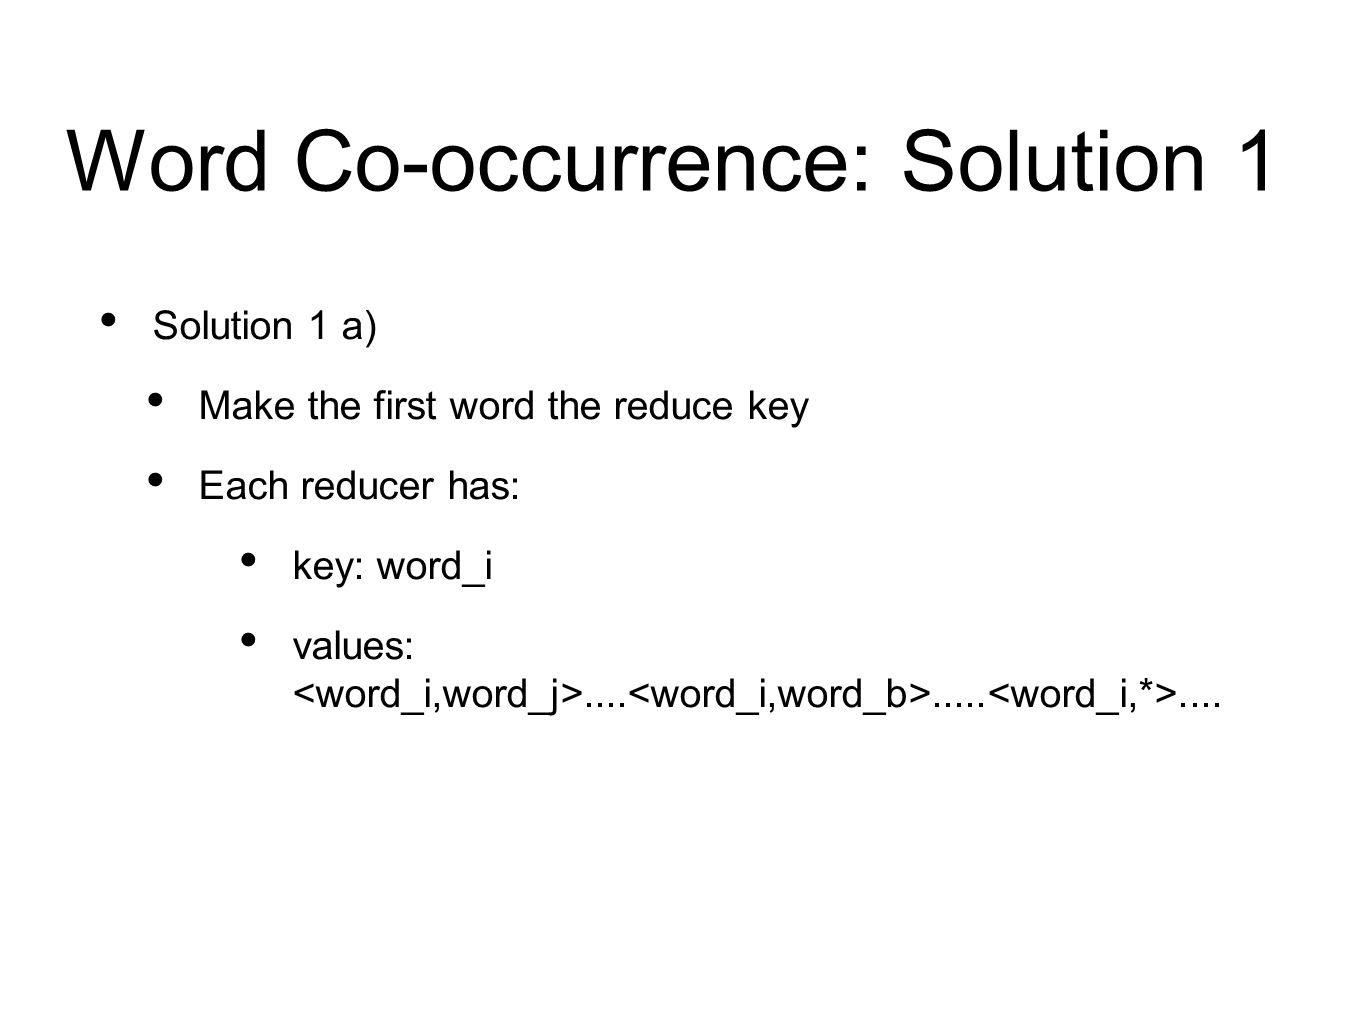 Word Co-occurrence: Solution 1 Solution 1 a) Make the first word the reduce key Each reducer has: key: word_i values:.............